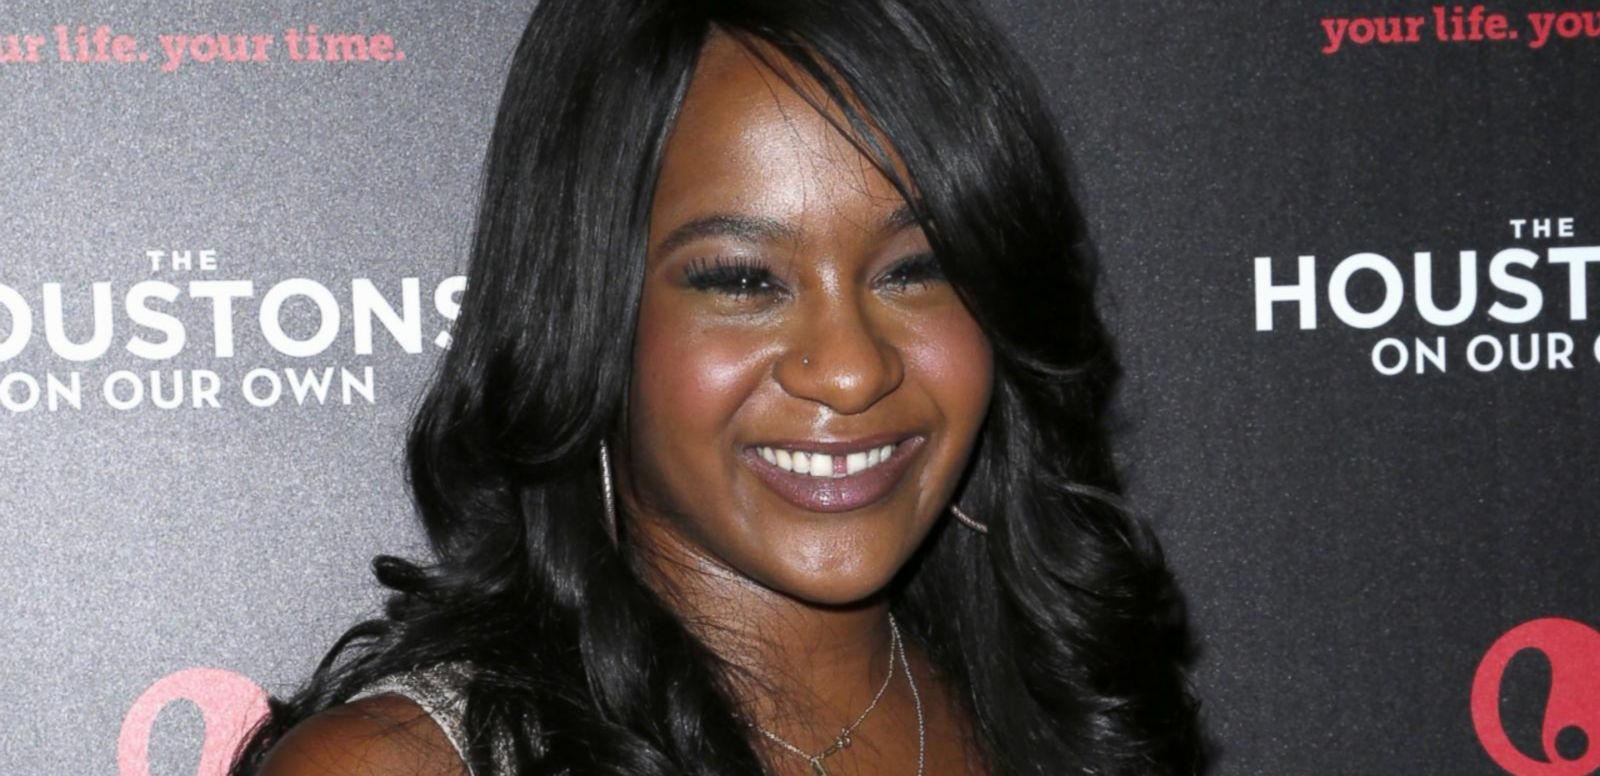 VIDEO: Bobbi Kristina Brown Found Unresponsive